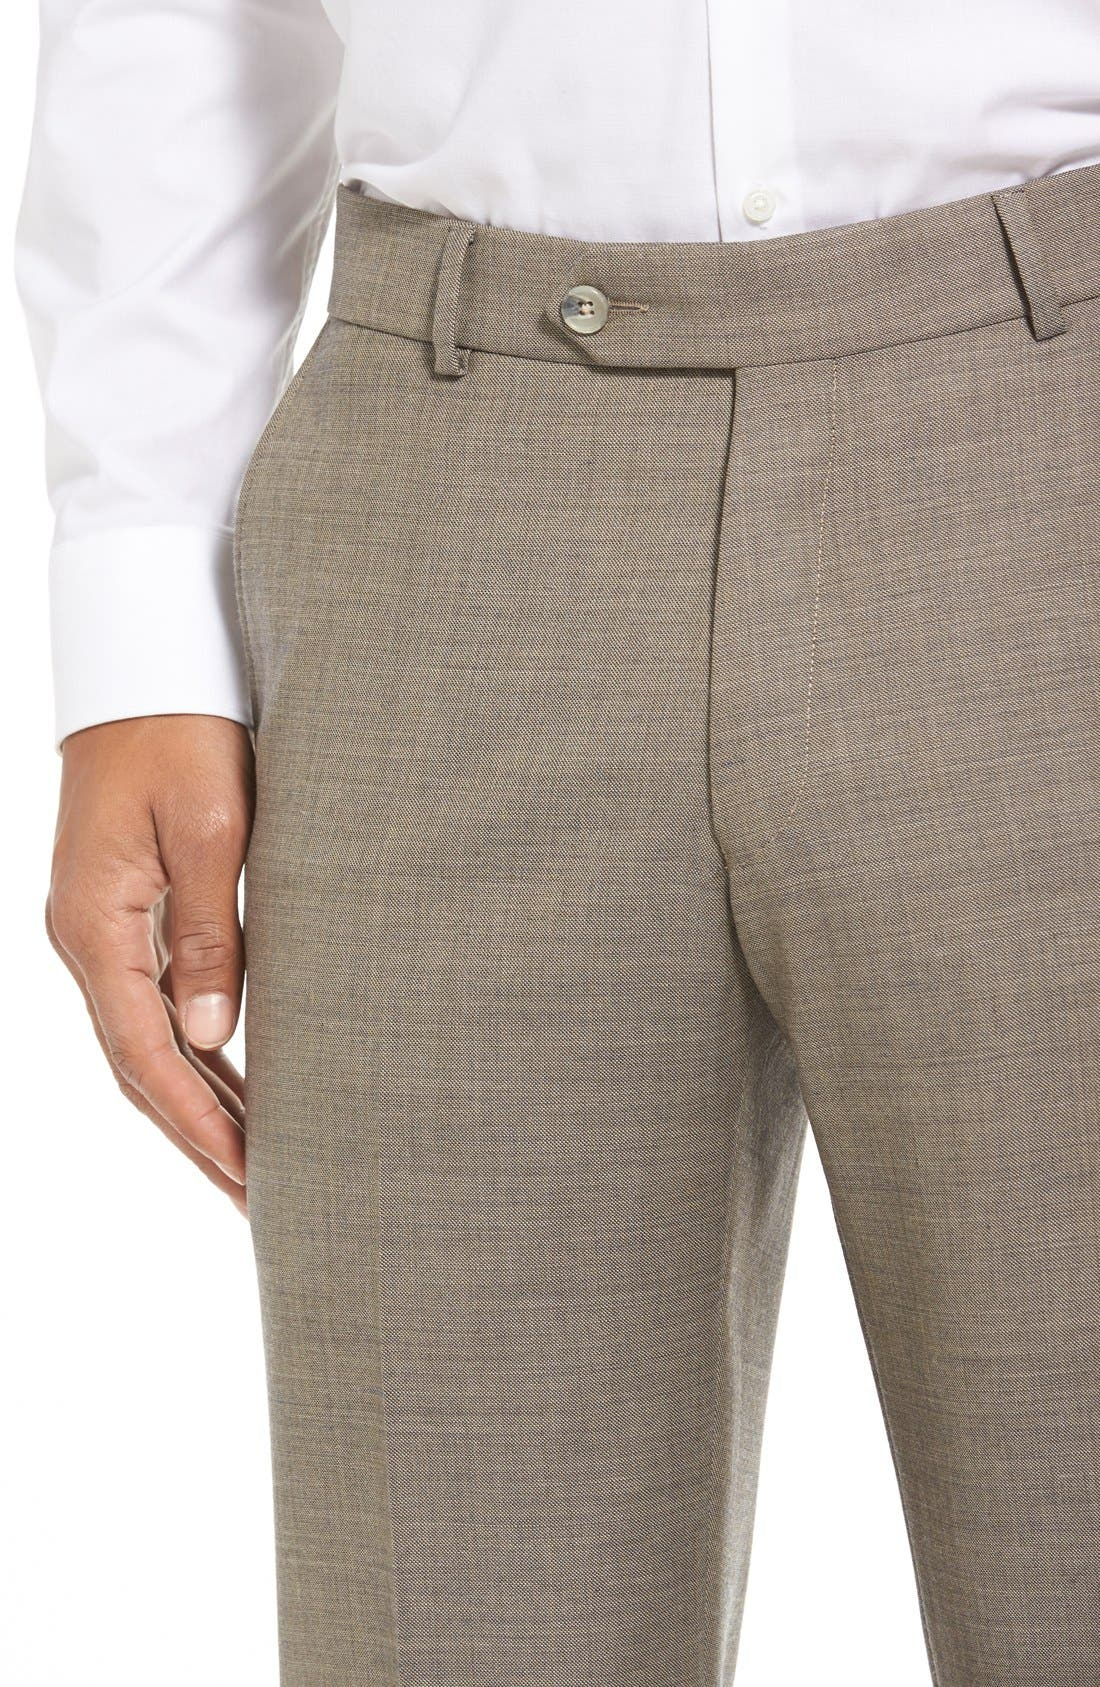 Flat Front Sharkskin Wool Trousers,                             Alternate thumbnail 5, color,                             British Tan